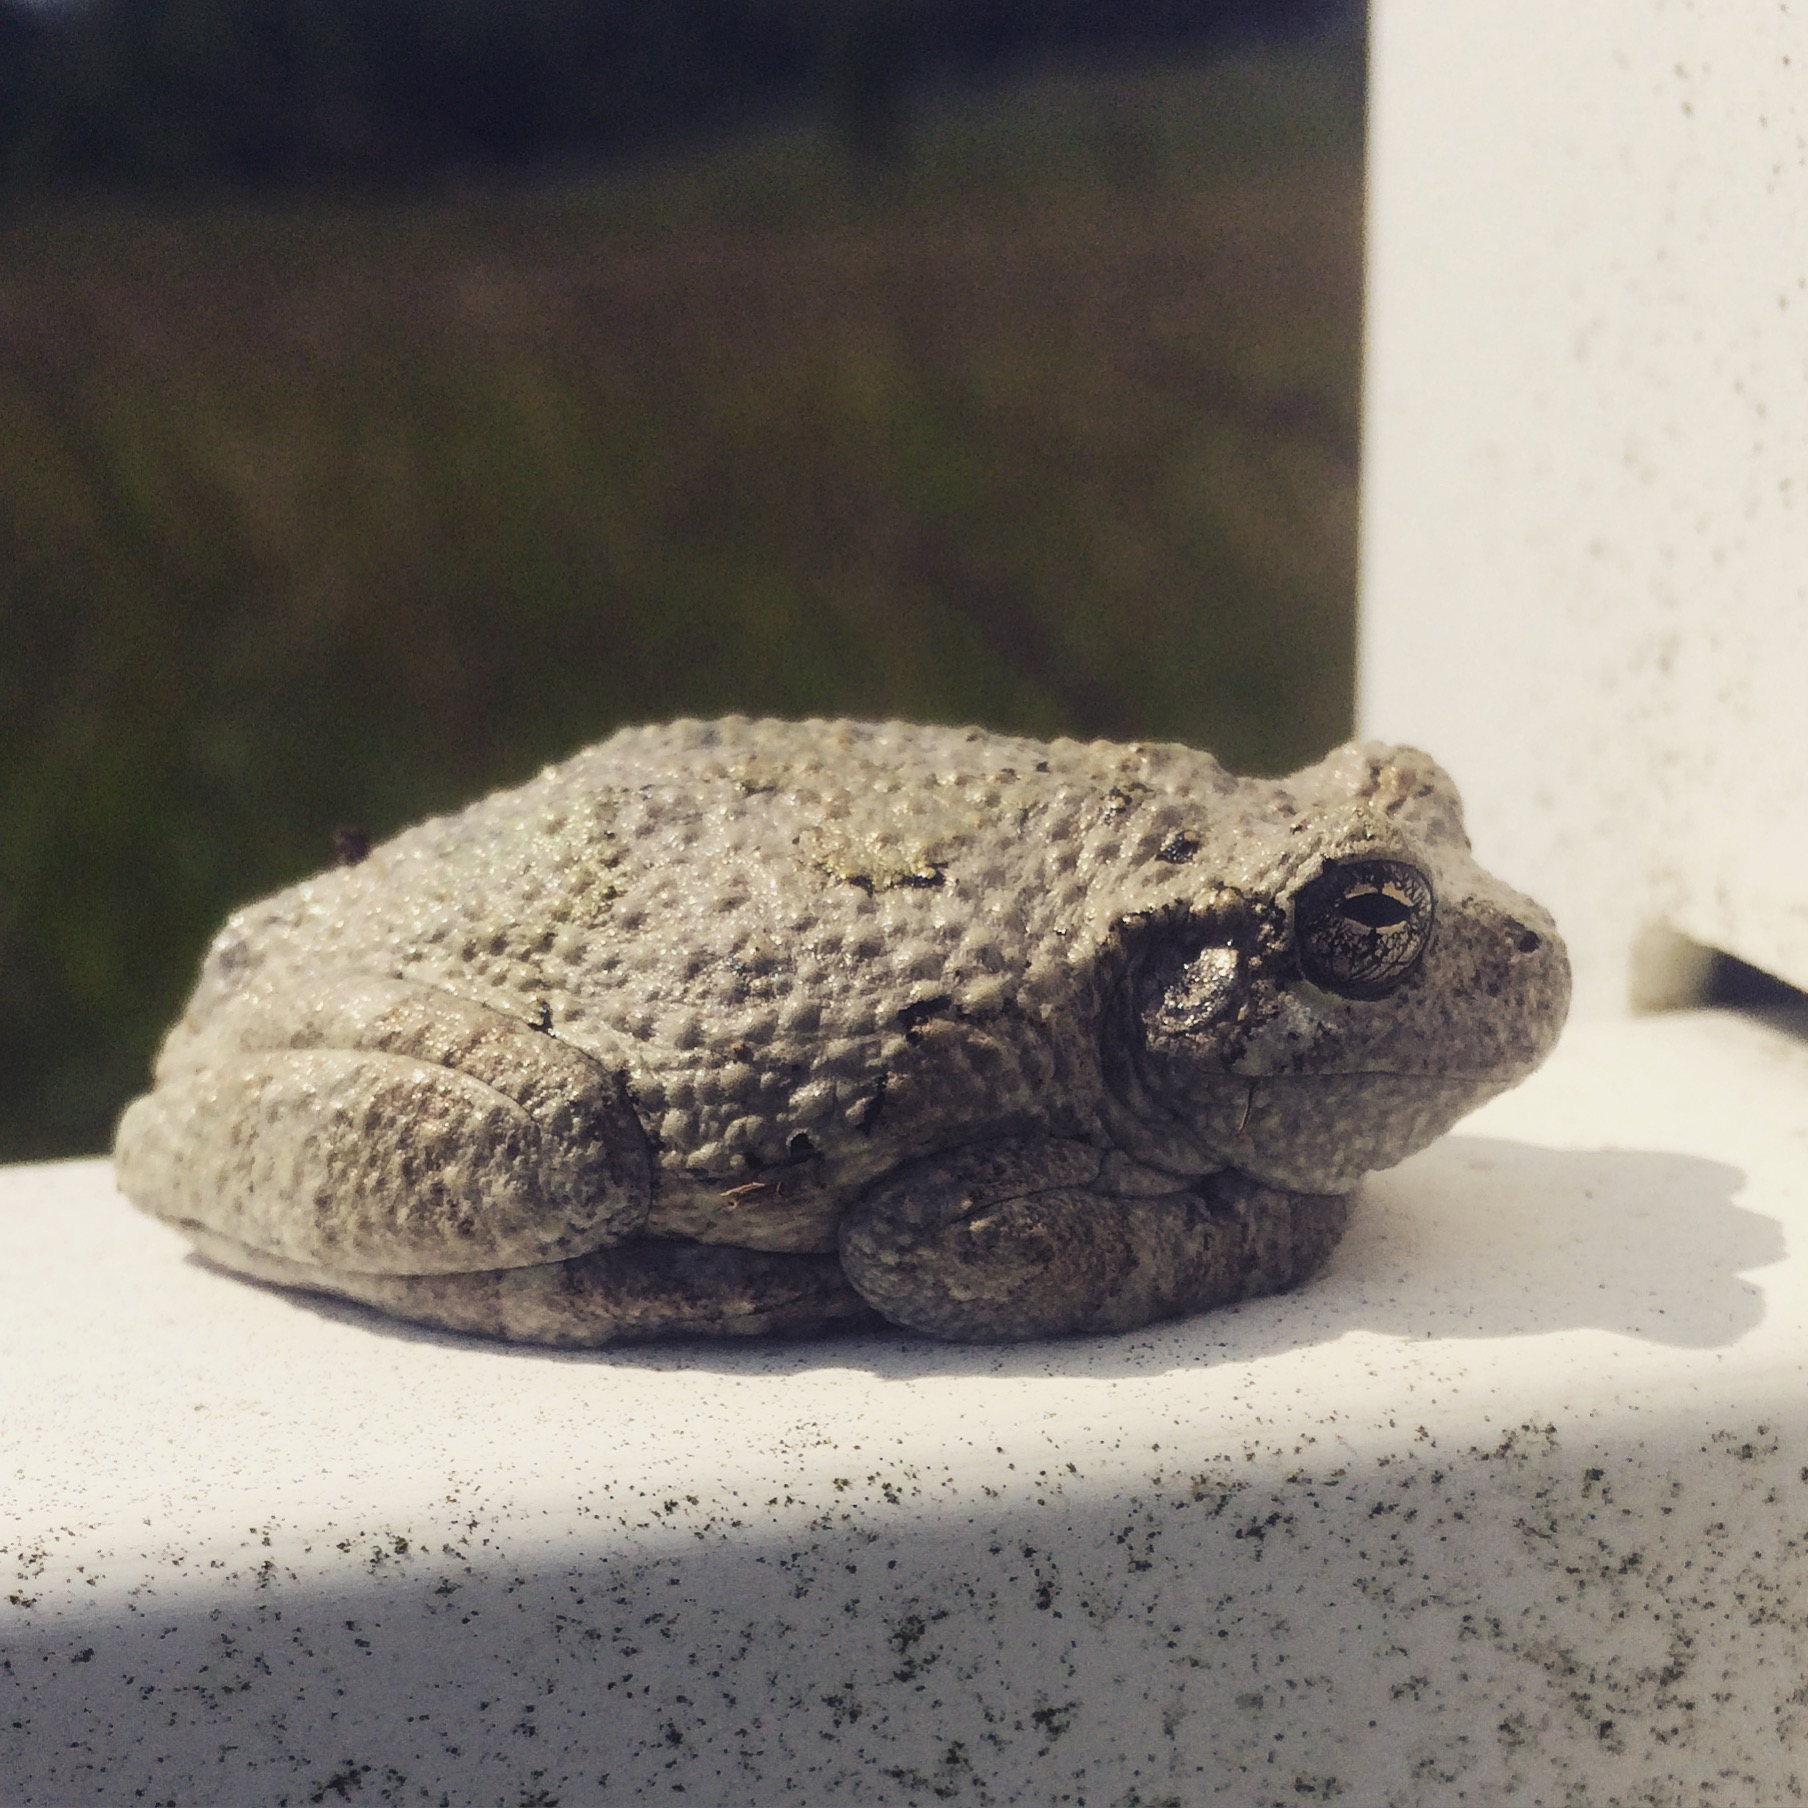 Gray Tree Frog found on our fence